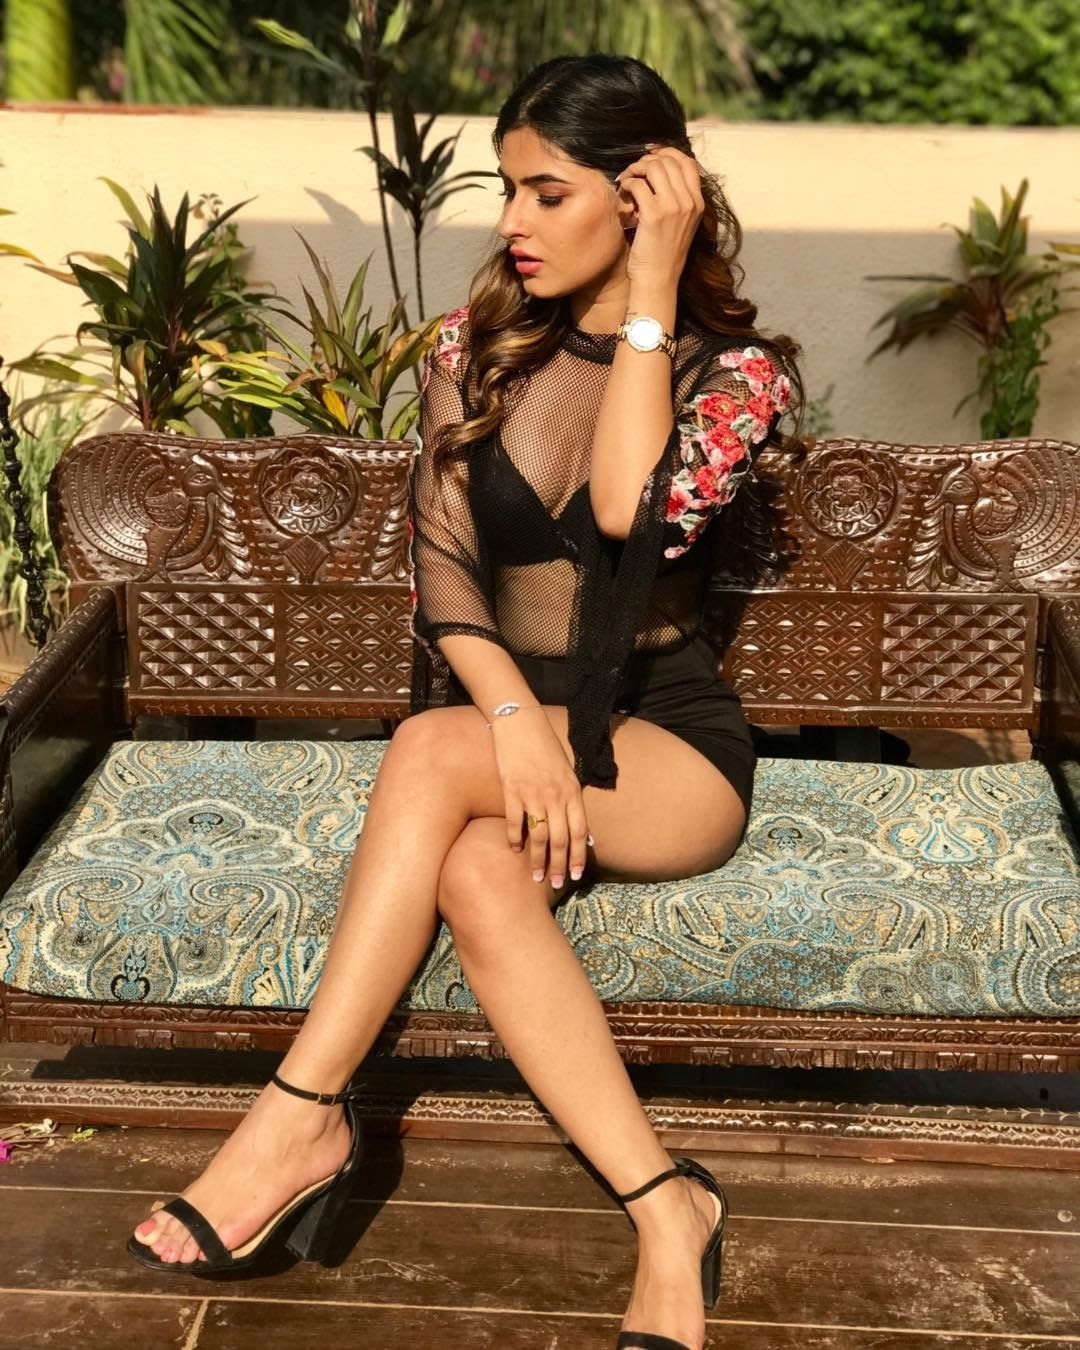 Karishma Sharma shown her sexy cleavage and thigh